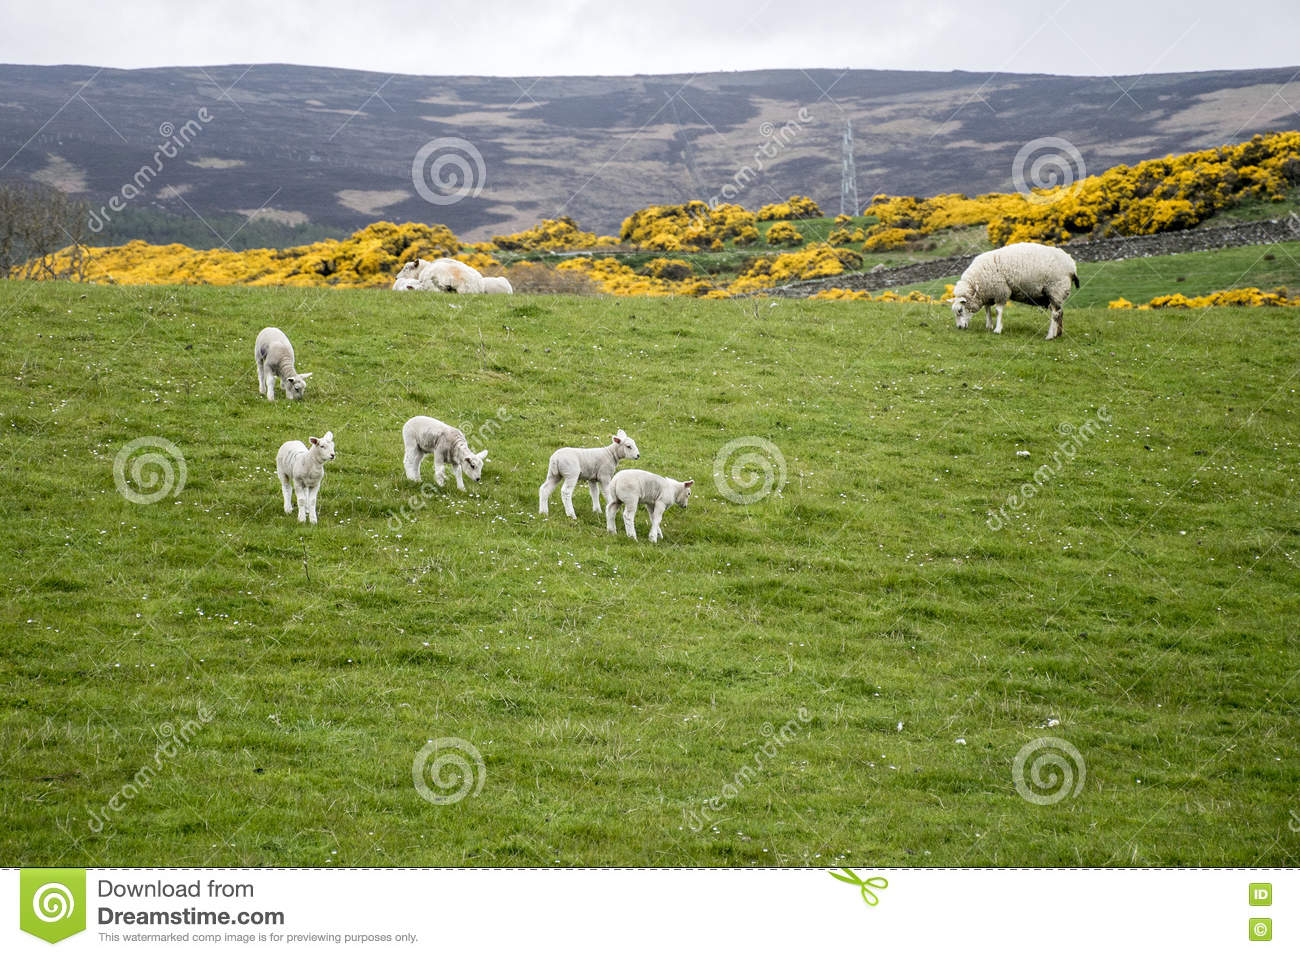 Free Images : landscape, nature, grass, group, field, farm, meadow ...